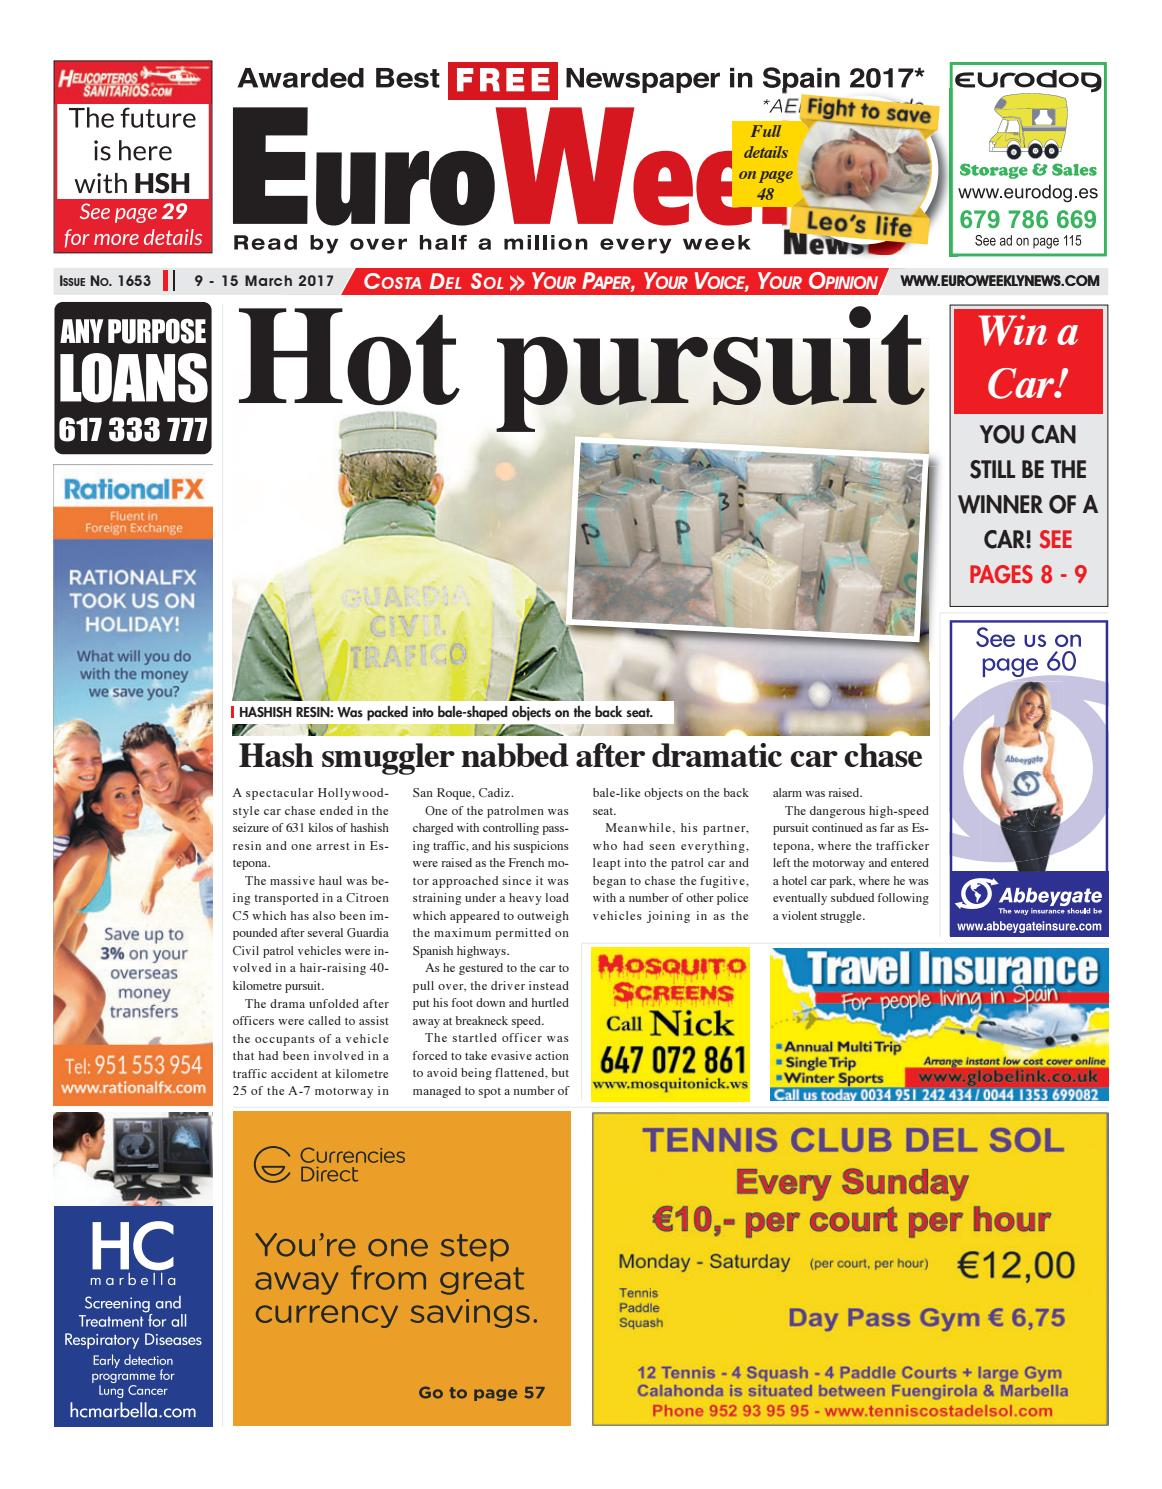 Euro weekly news costa del sol 9 15 march 2017 issue 1653 by euro weekly news costa del sol 9 15 march 2017 issue 1653 by euro weekly news media sa issuu fandeluxe Images